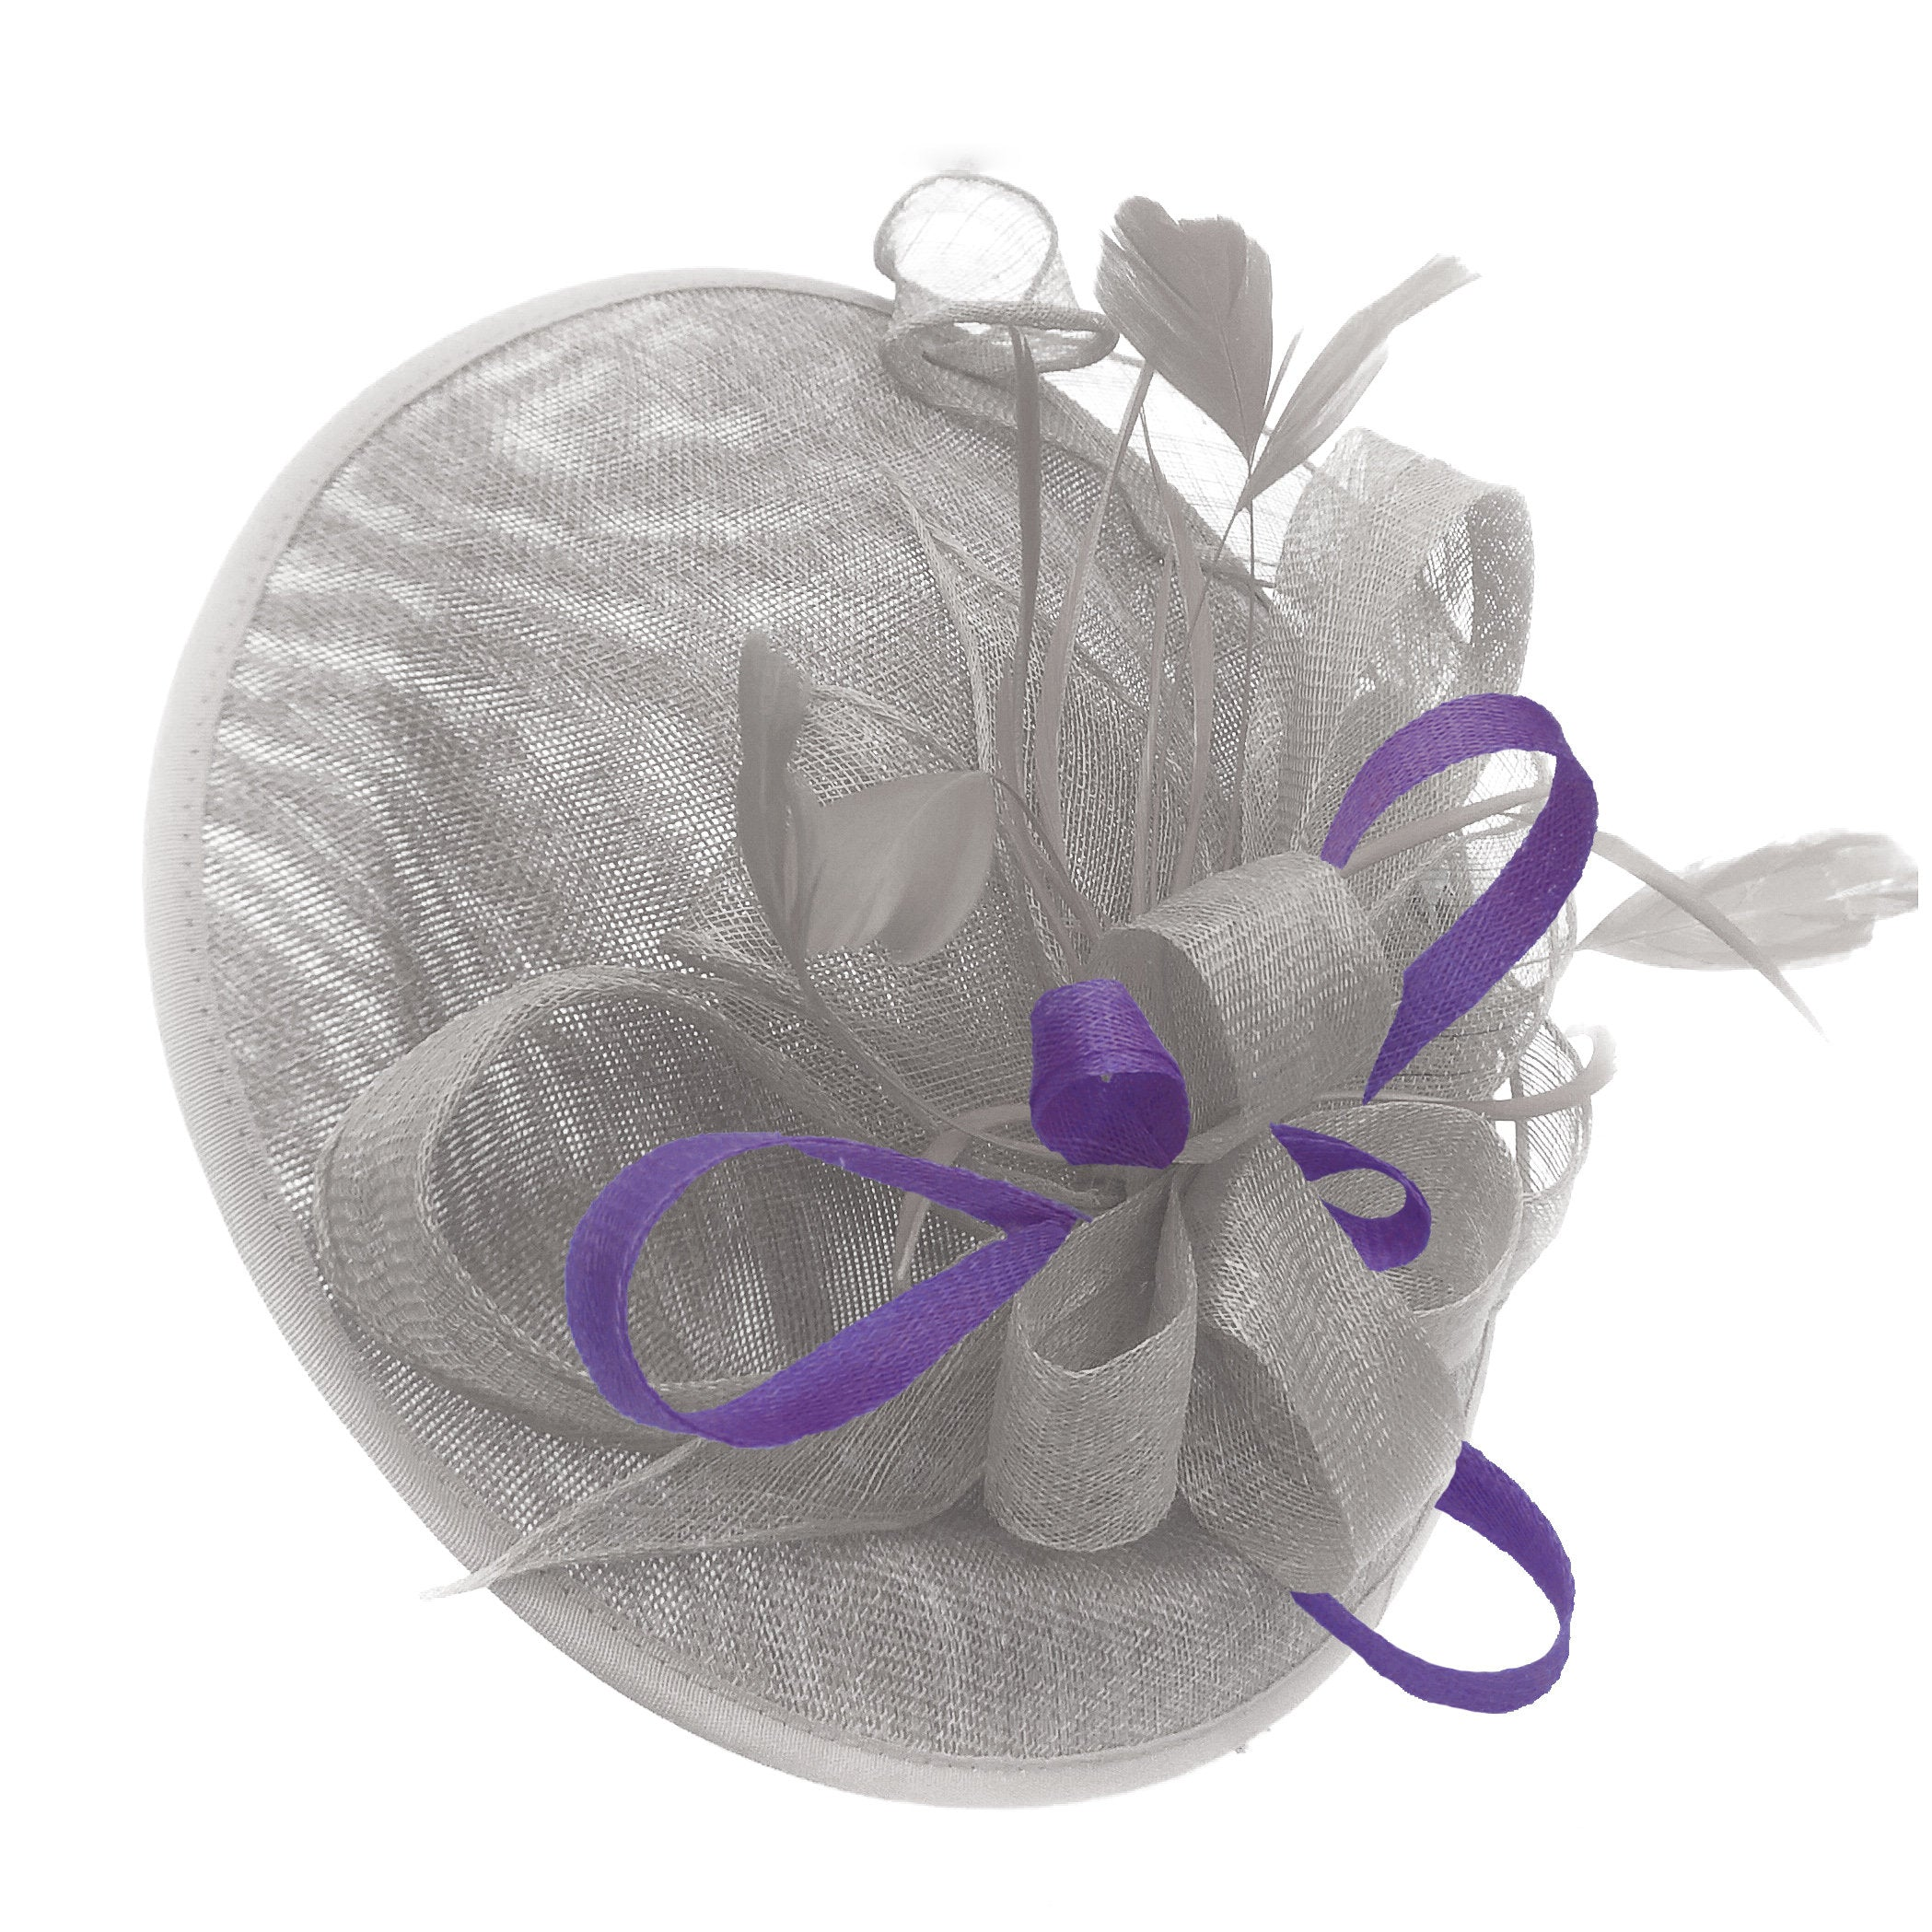 Caprilite Big Saucer Sinamay Silver Grey & Lavender Purple Mixed Colour Fascinator On Headband